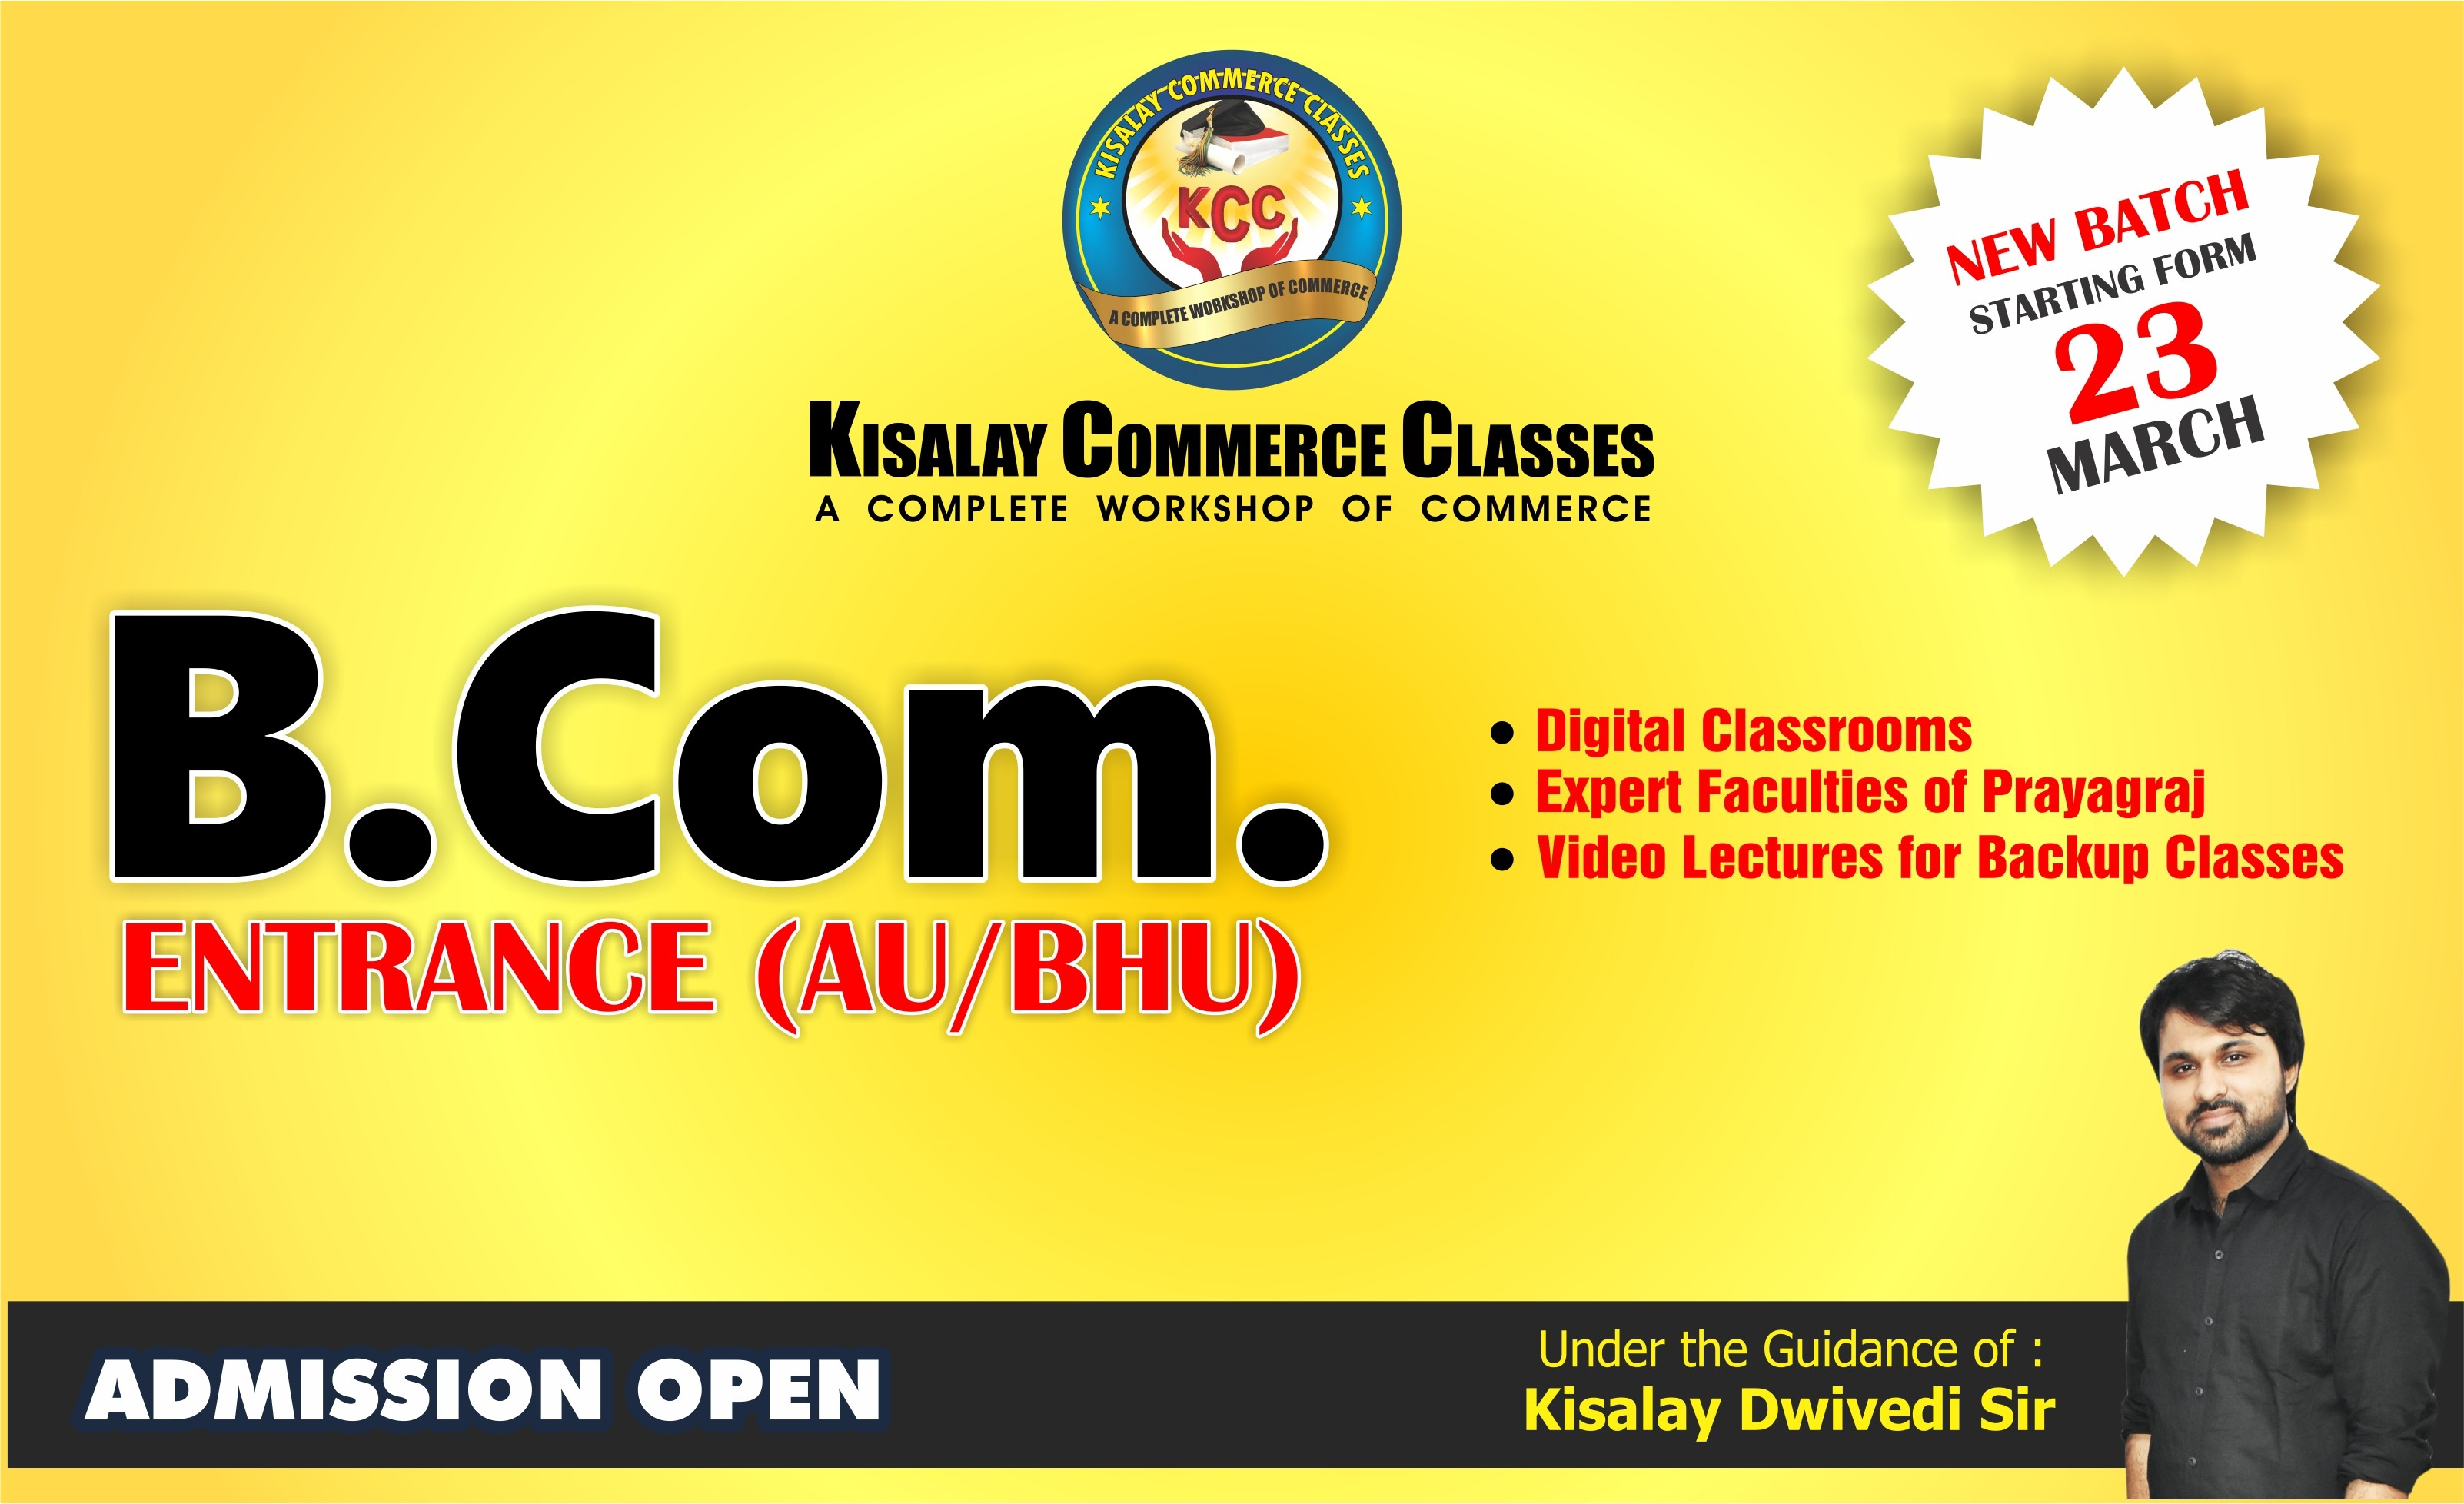 Kisalay Commerce Classes